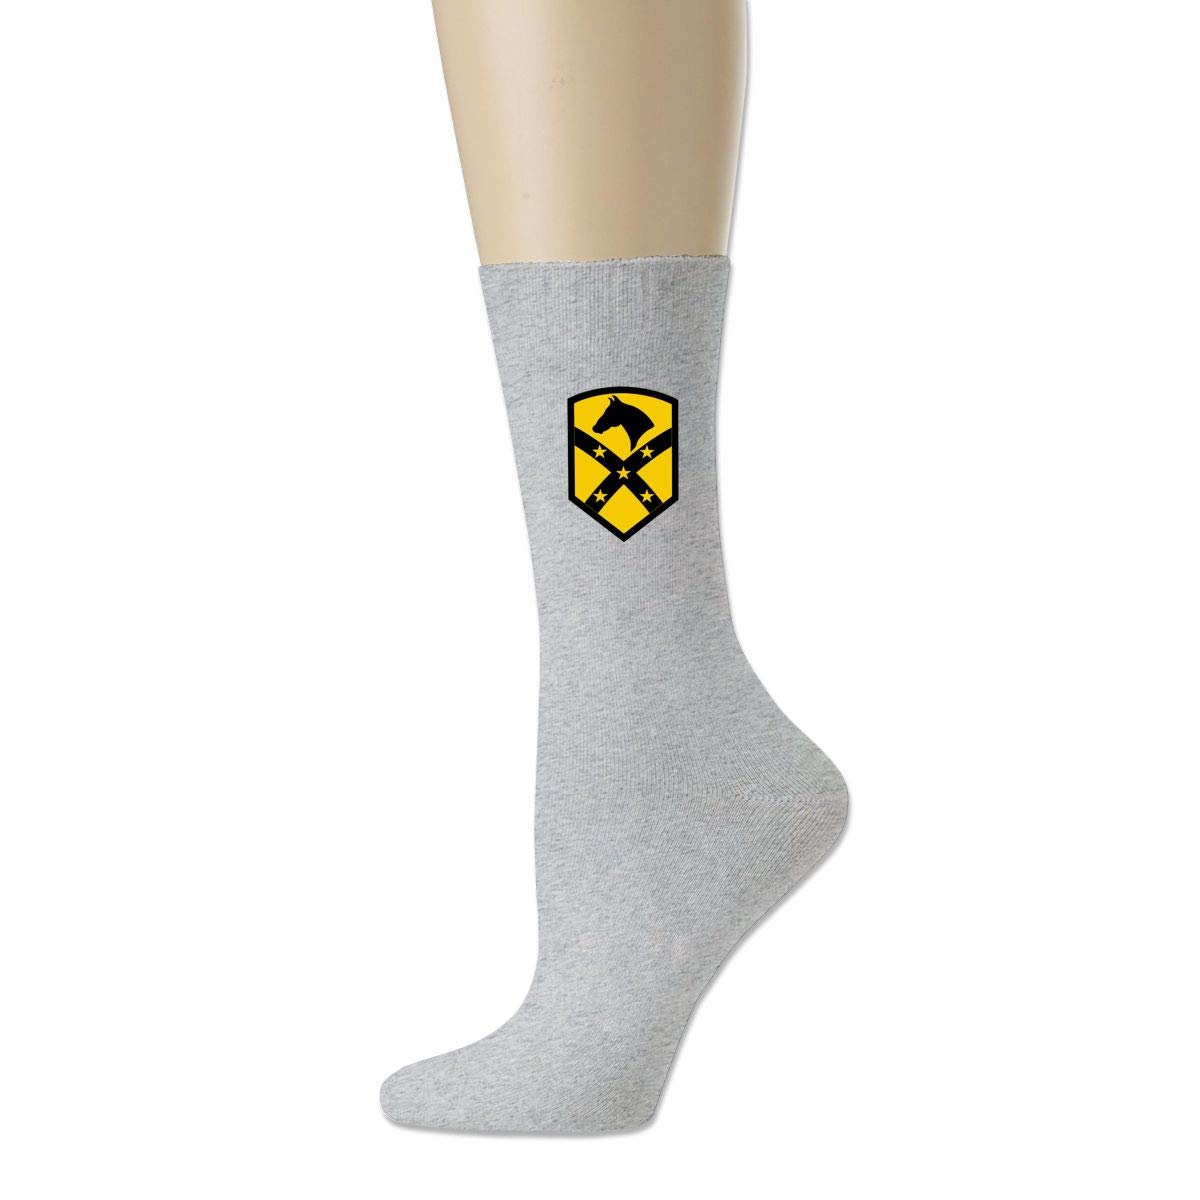 Rigg-socks The 1st Air Cavalry Brigade1 For Men Comfortable Sport Socks Gray